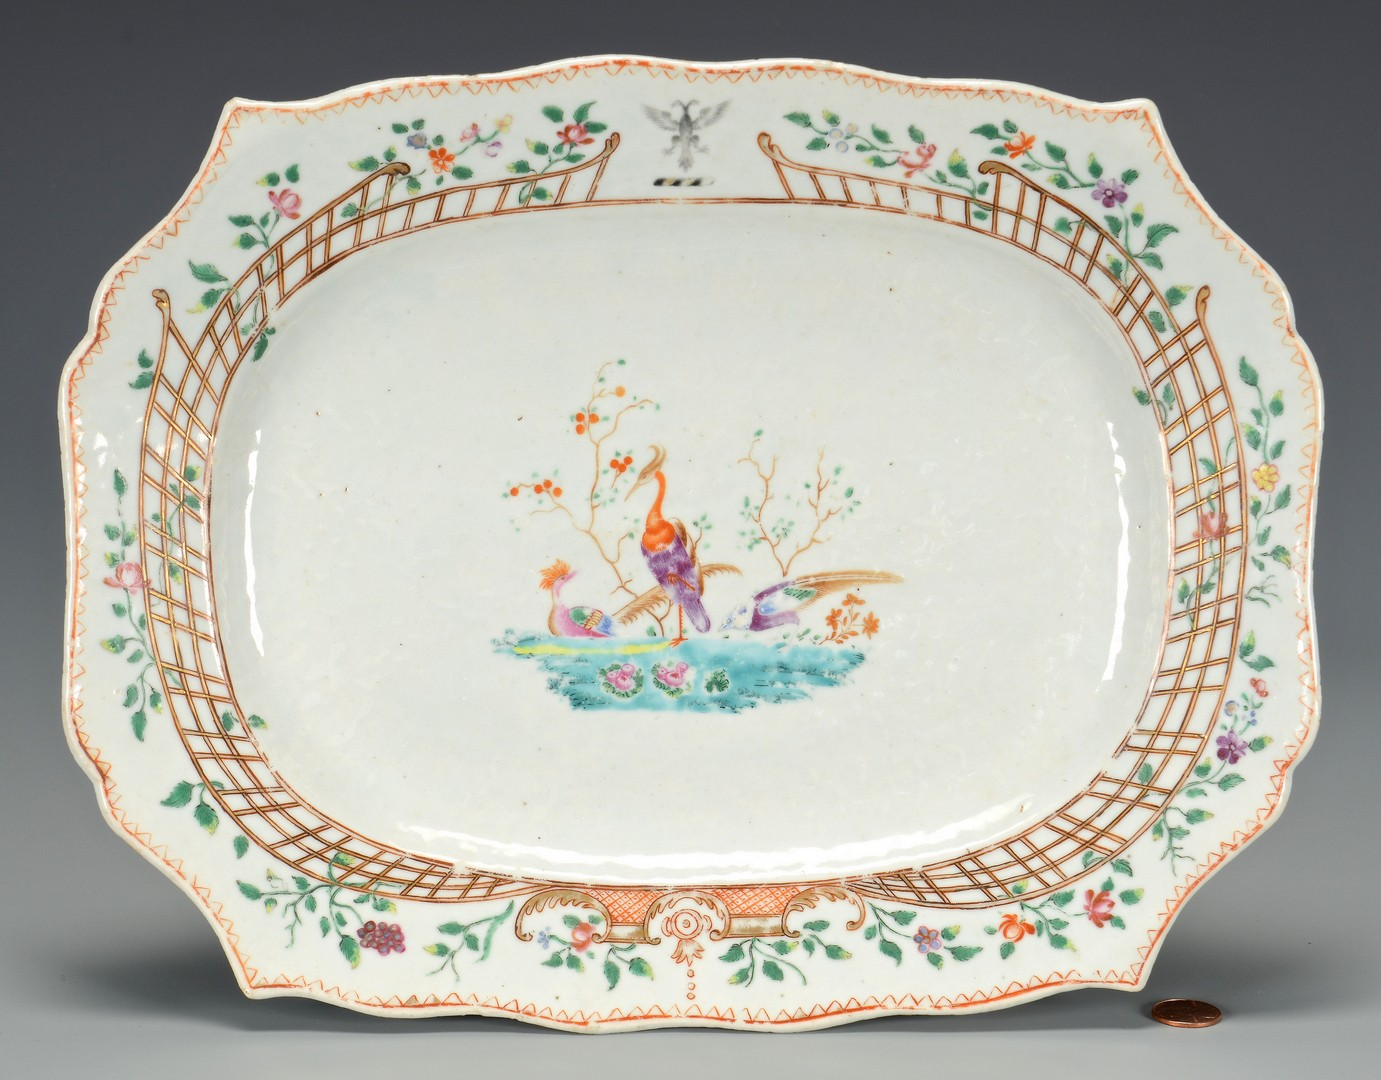 Lot 351: Chinese Export Armorial Platter